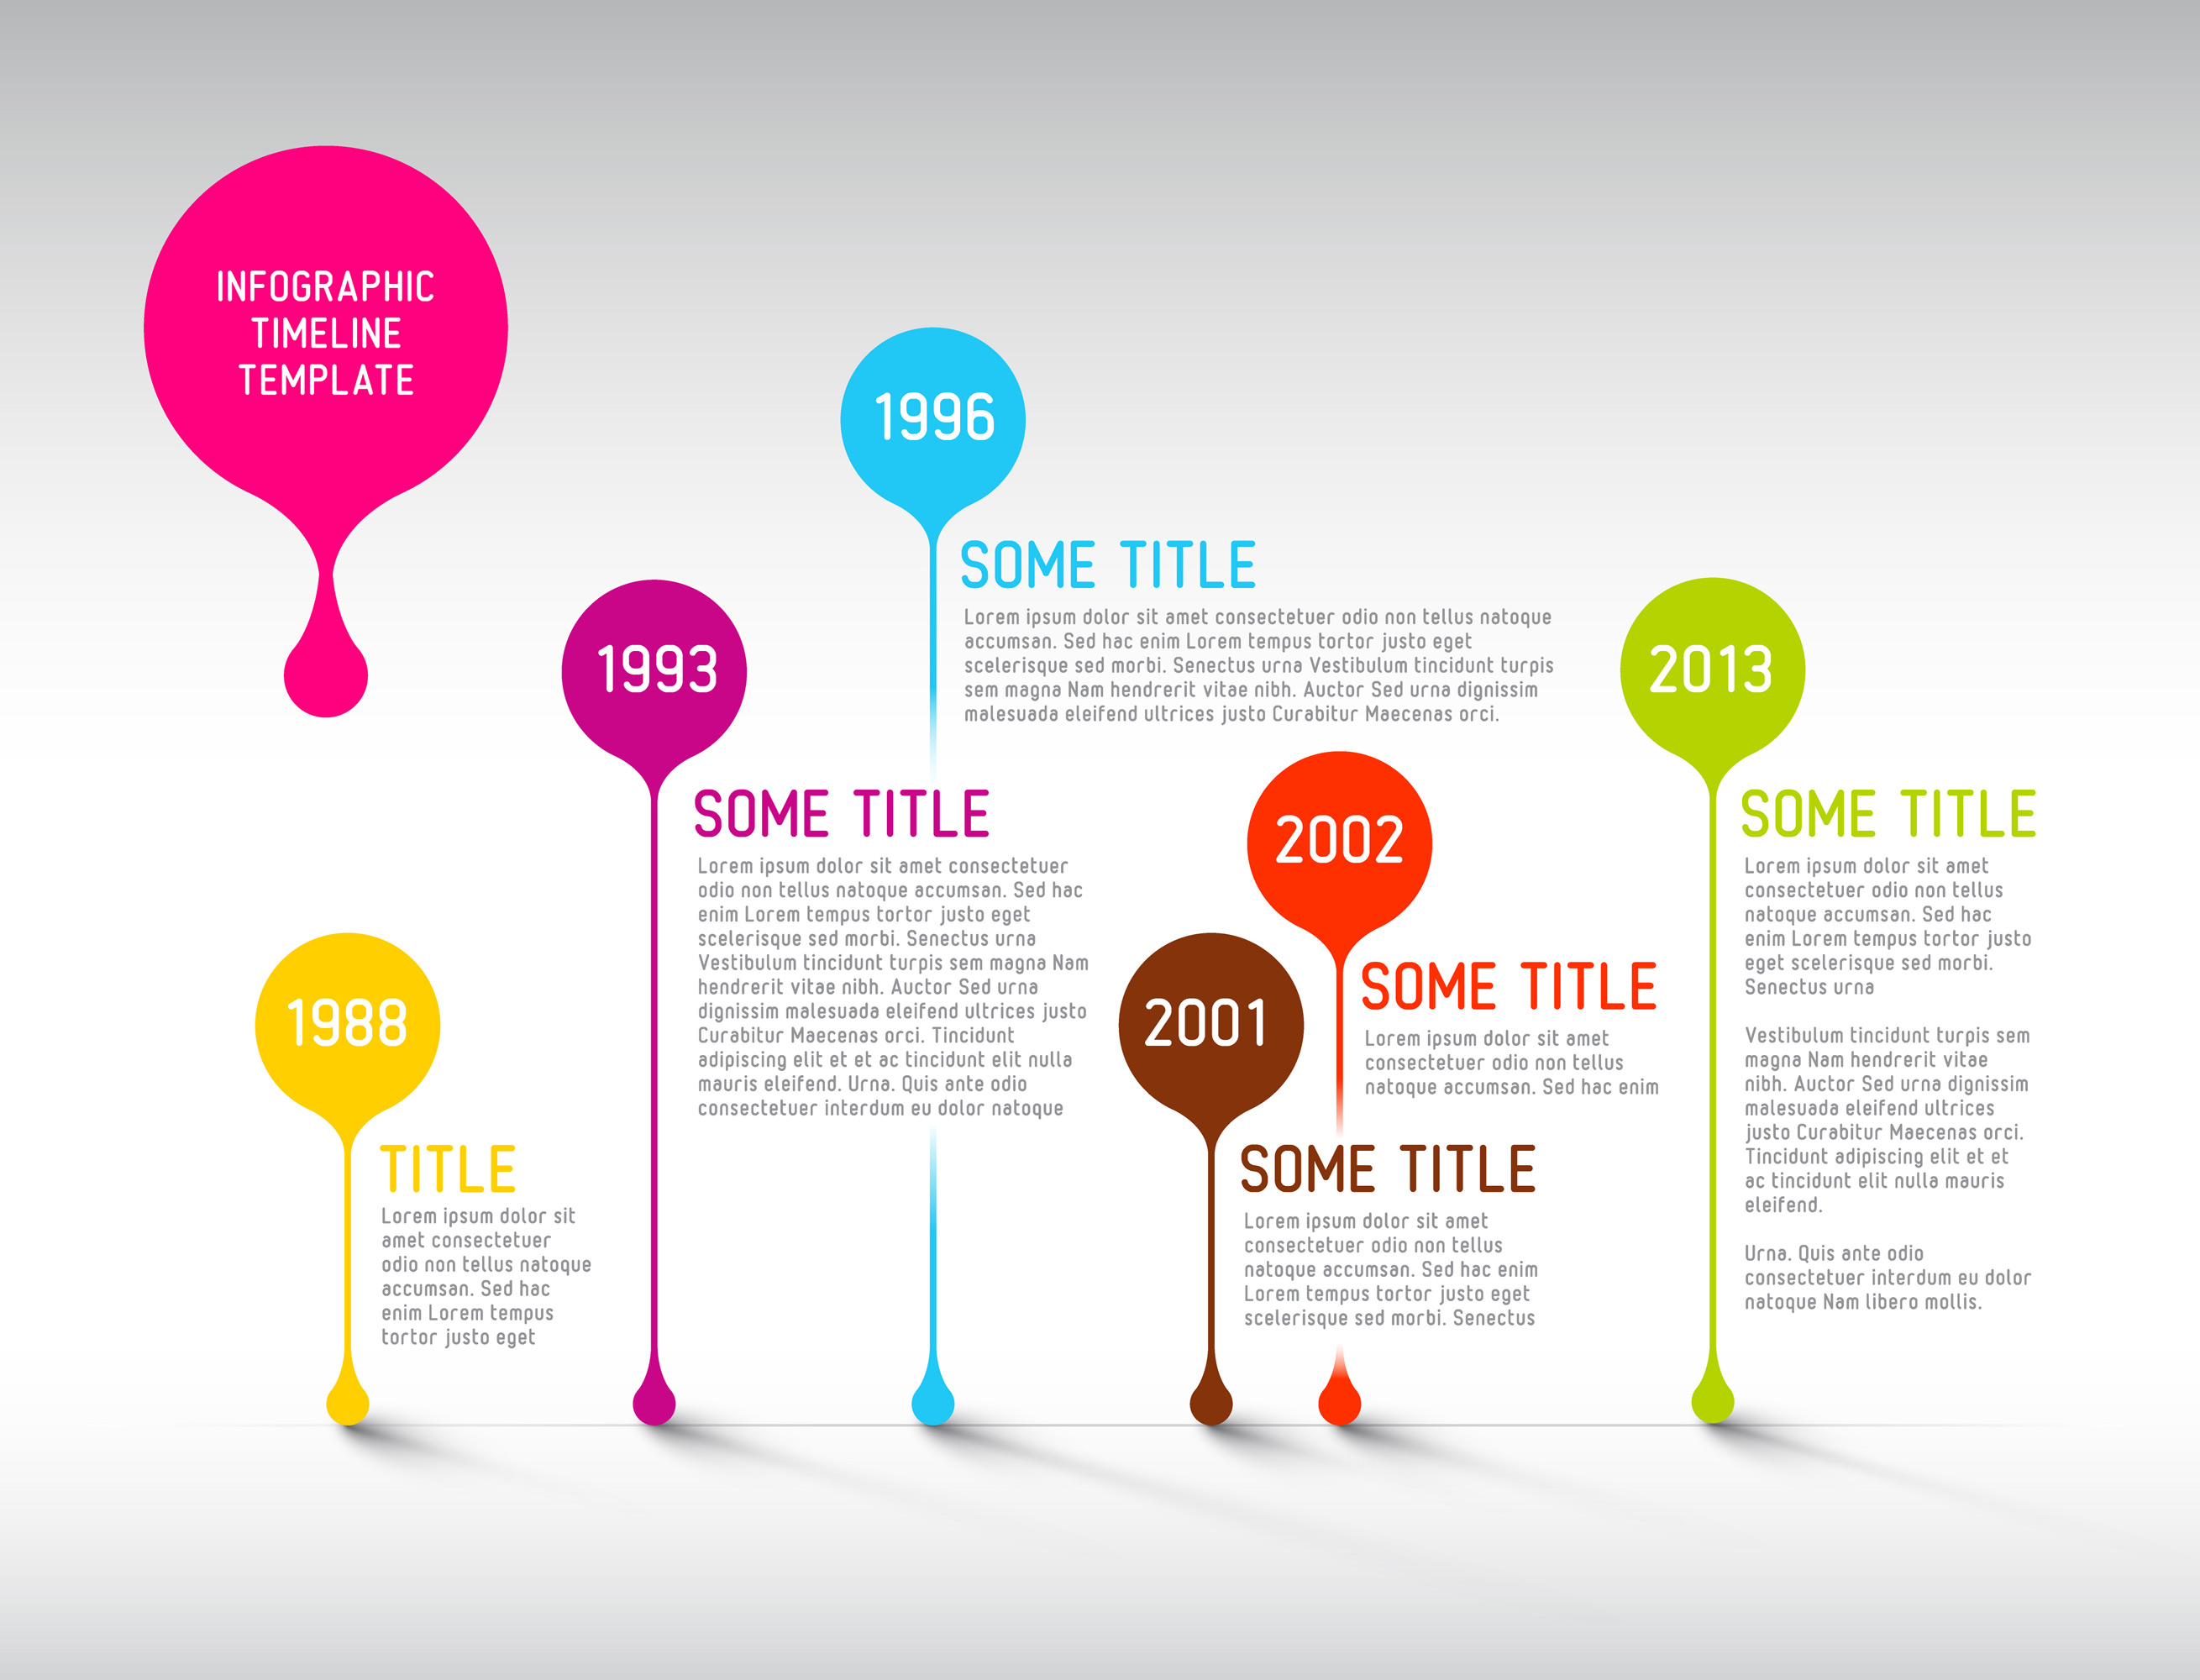 Infographic Timeline Templates Bundle example image 7